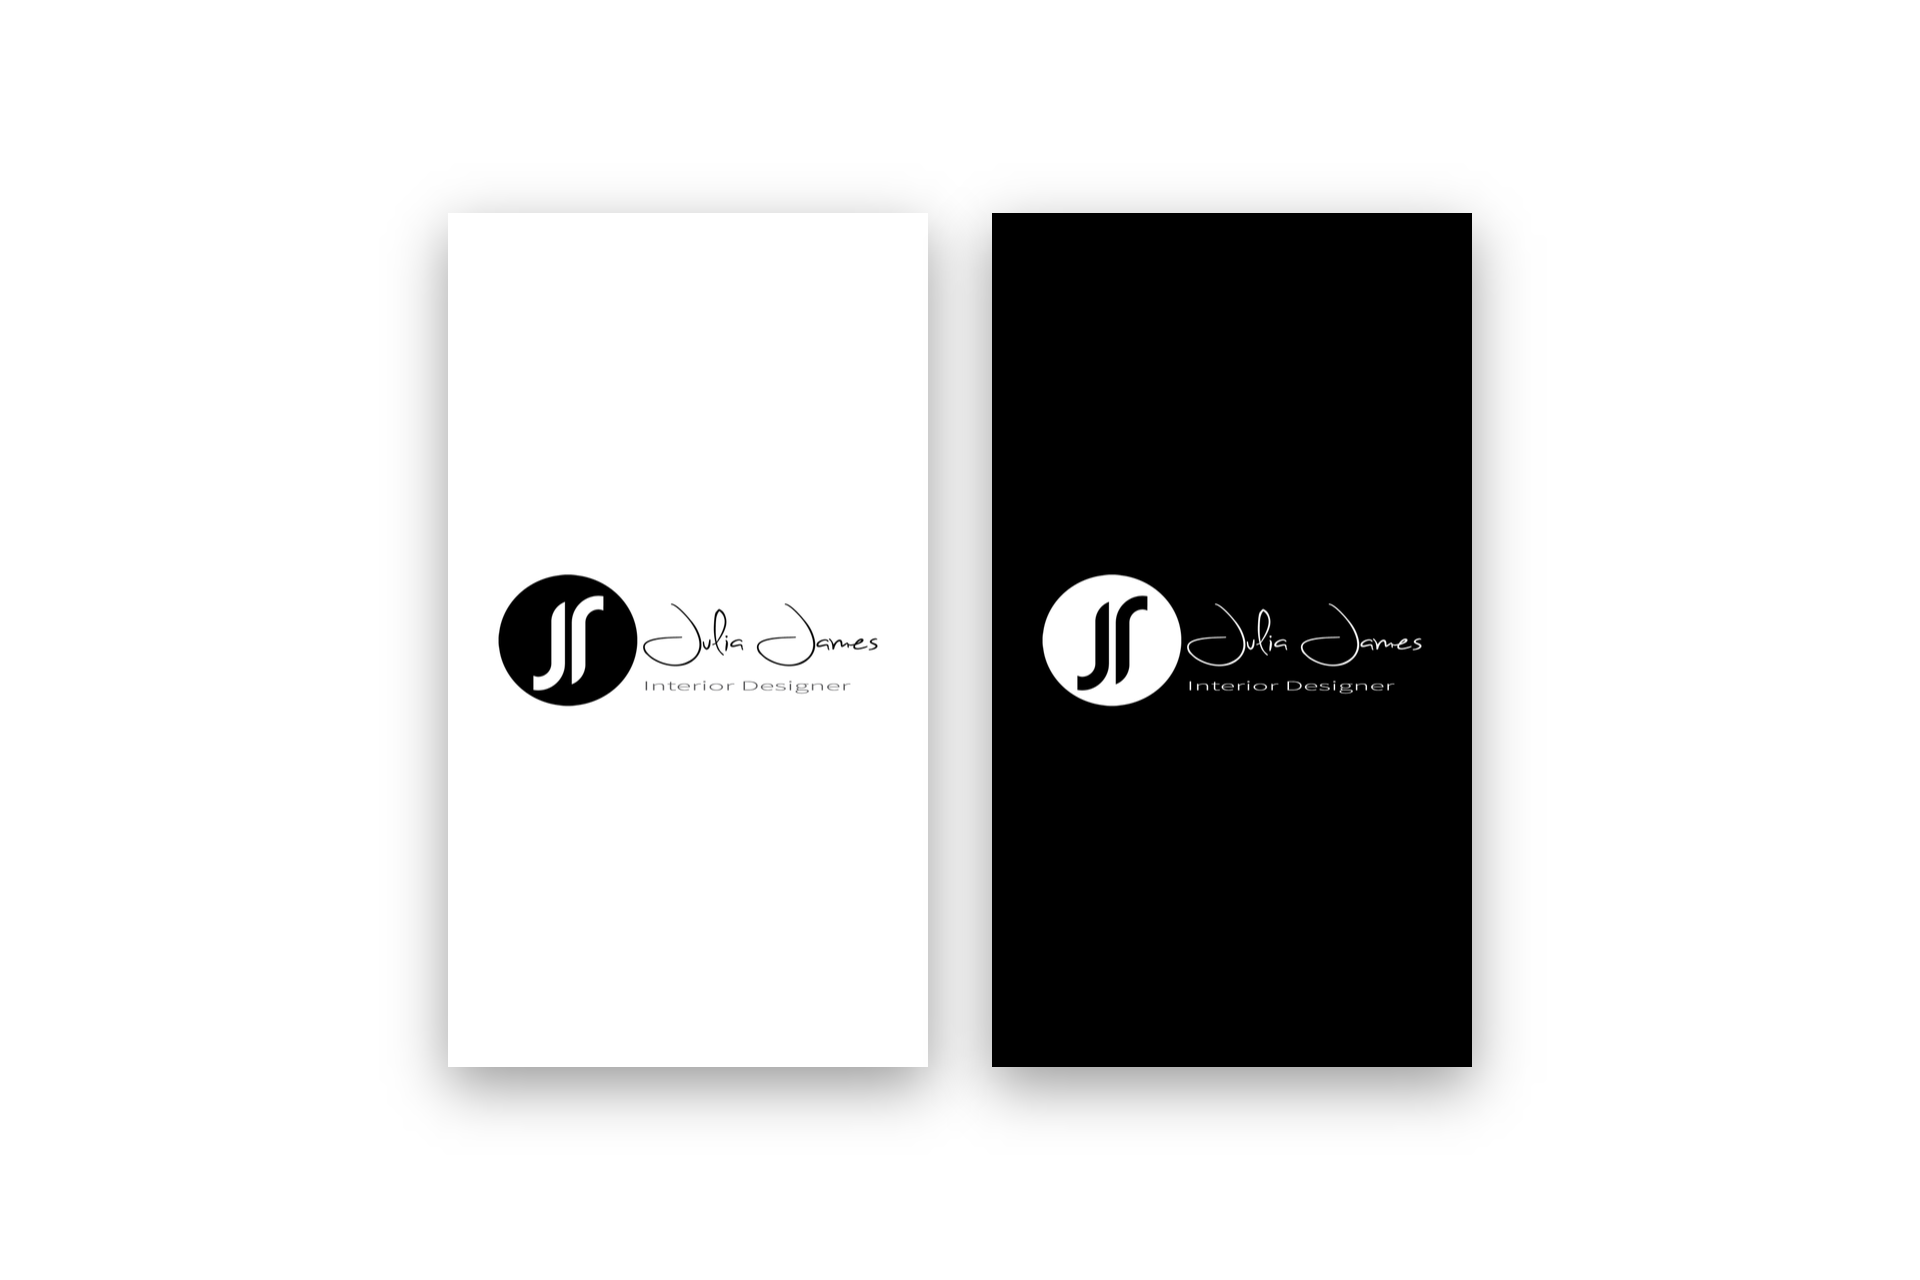 julia james interior designer logo design brand identity - Interior Design Logo Ideas